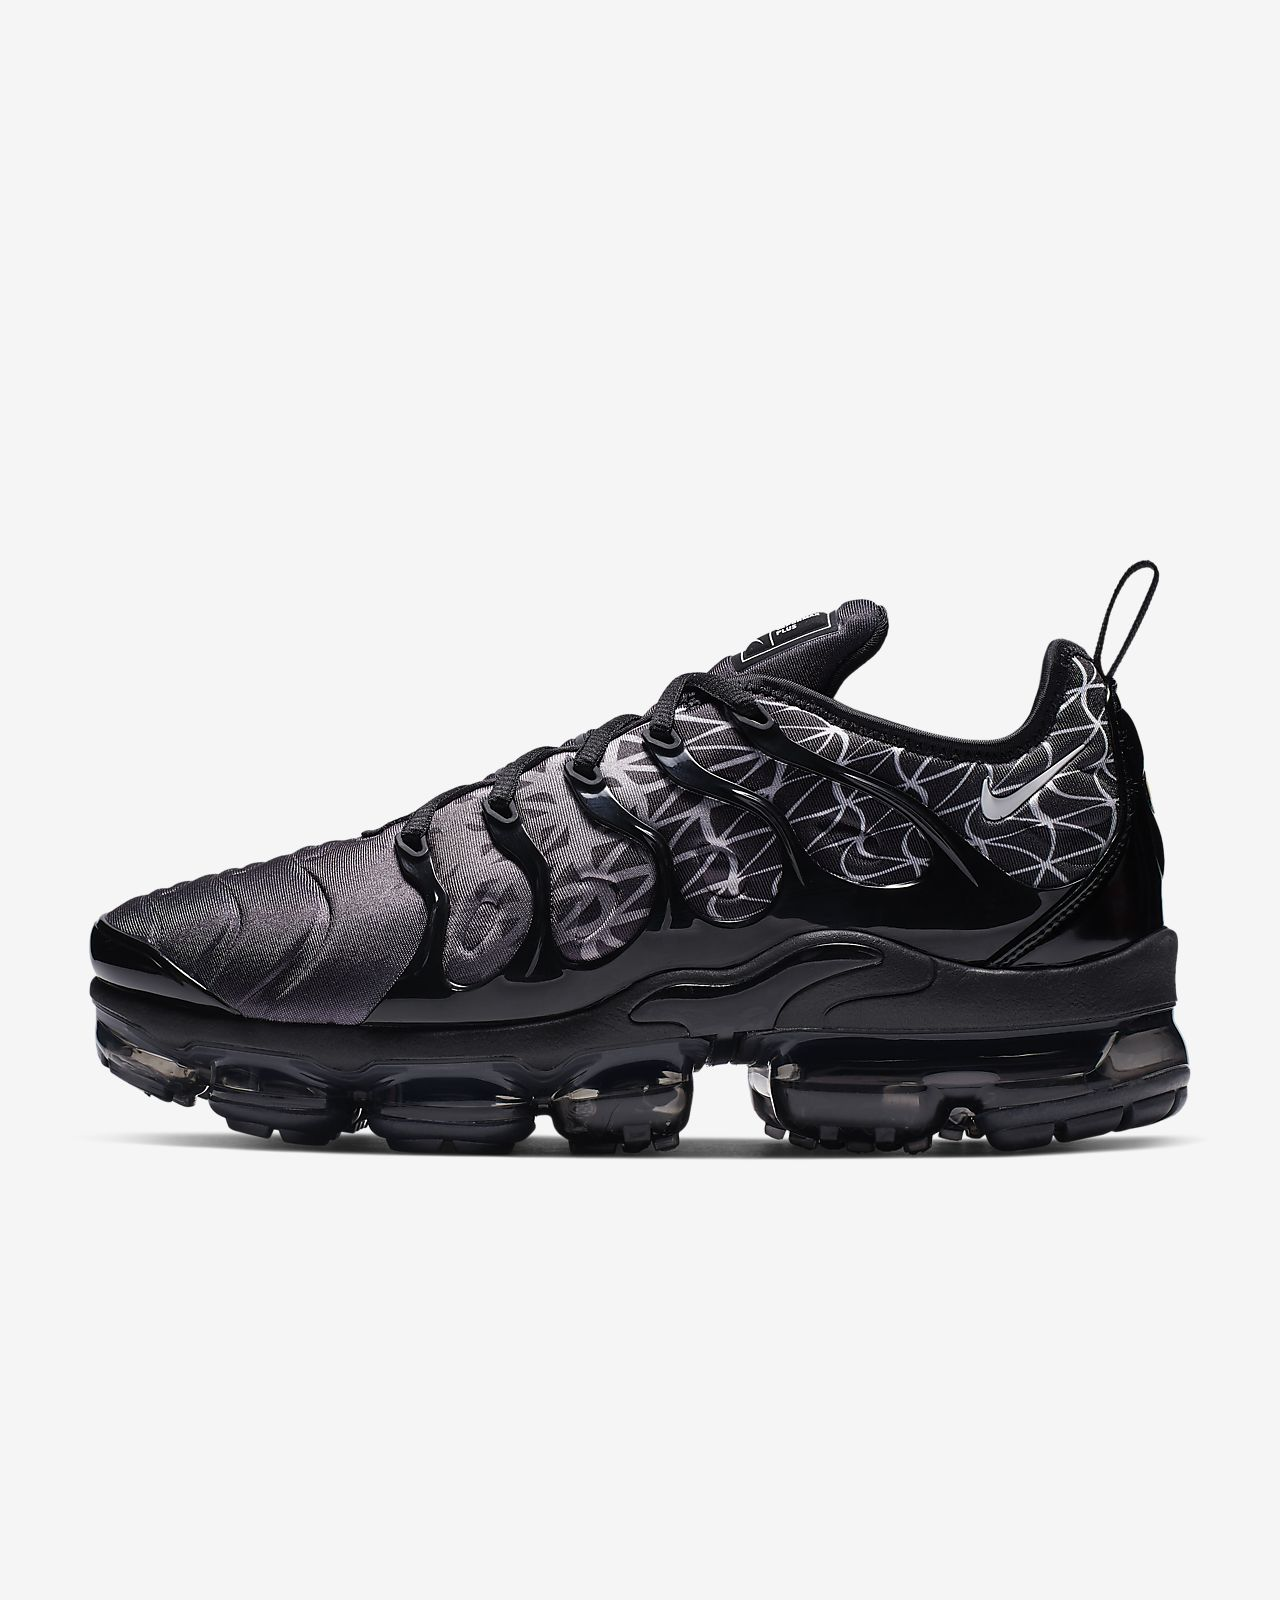 798b3d4c2f1 Nike Air VaporMax Plus Men s Shoe. Nike.com AU